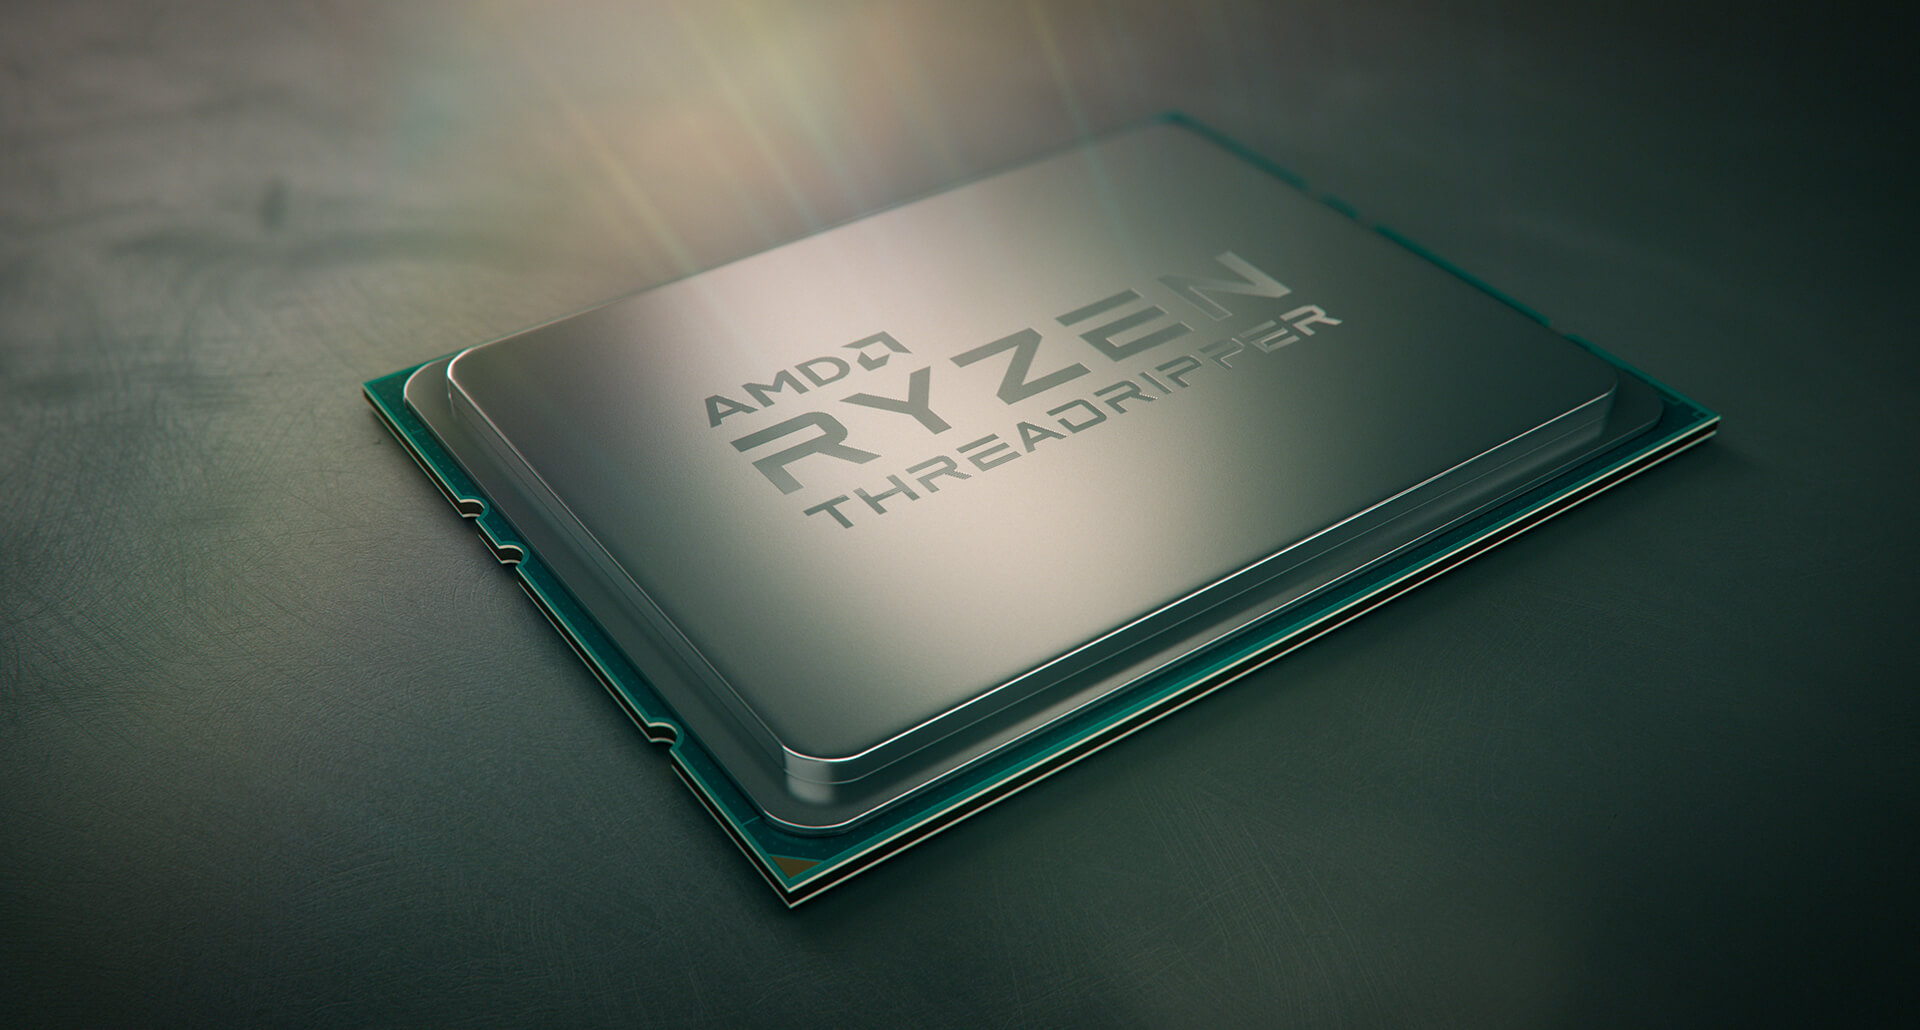 AMD Ryzen Threadripper Ultra High-End CPUs Launching in August